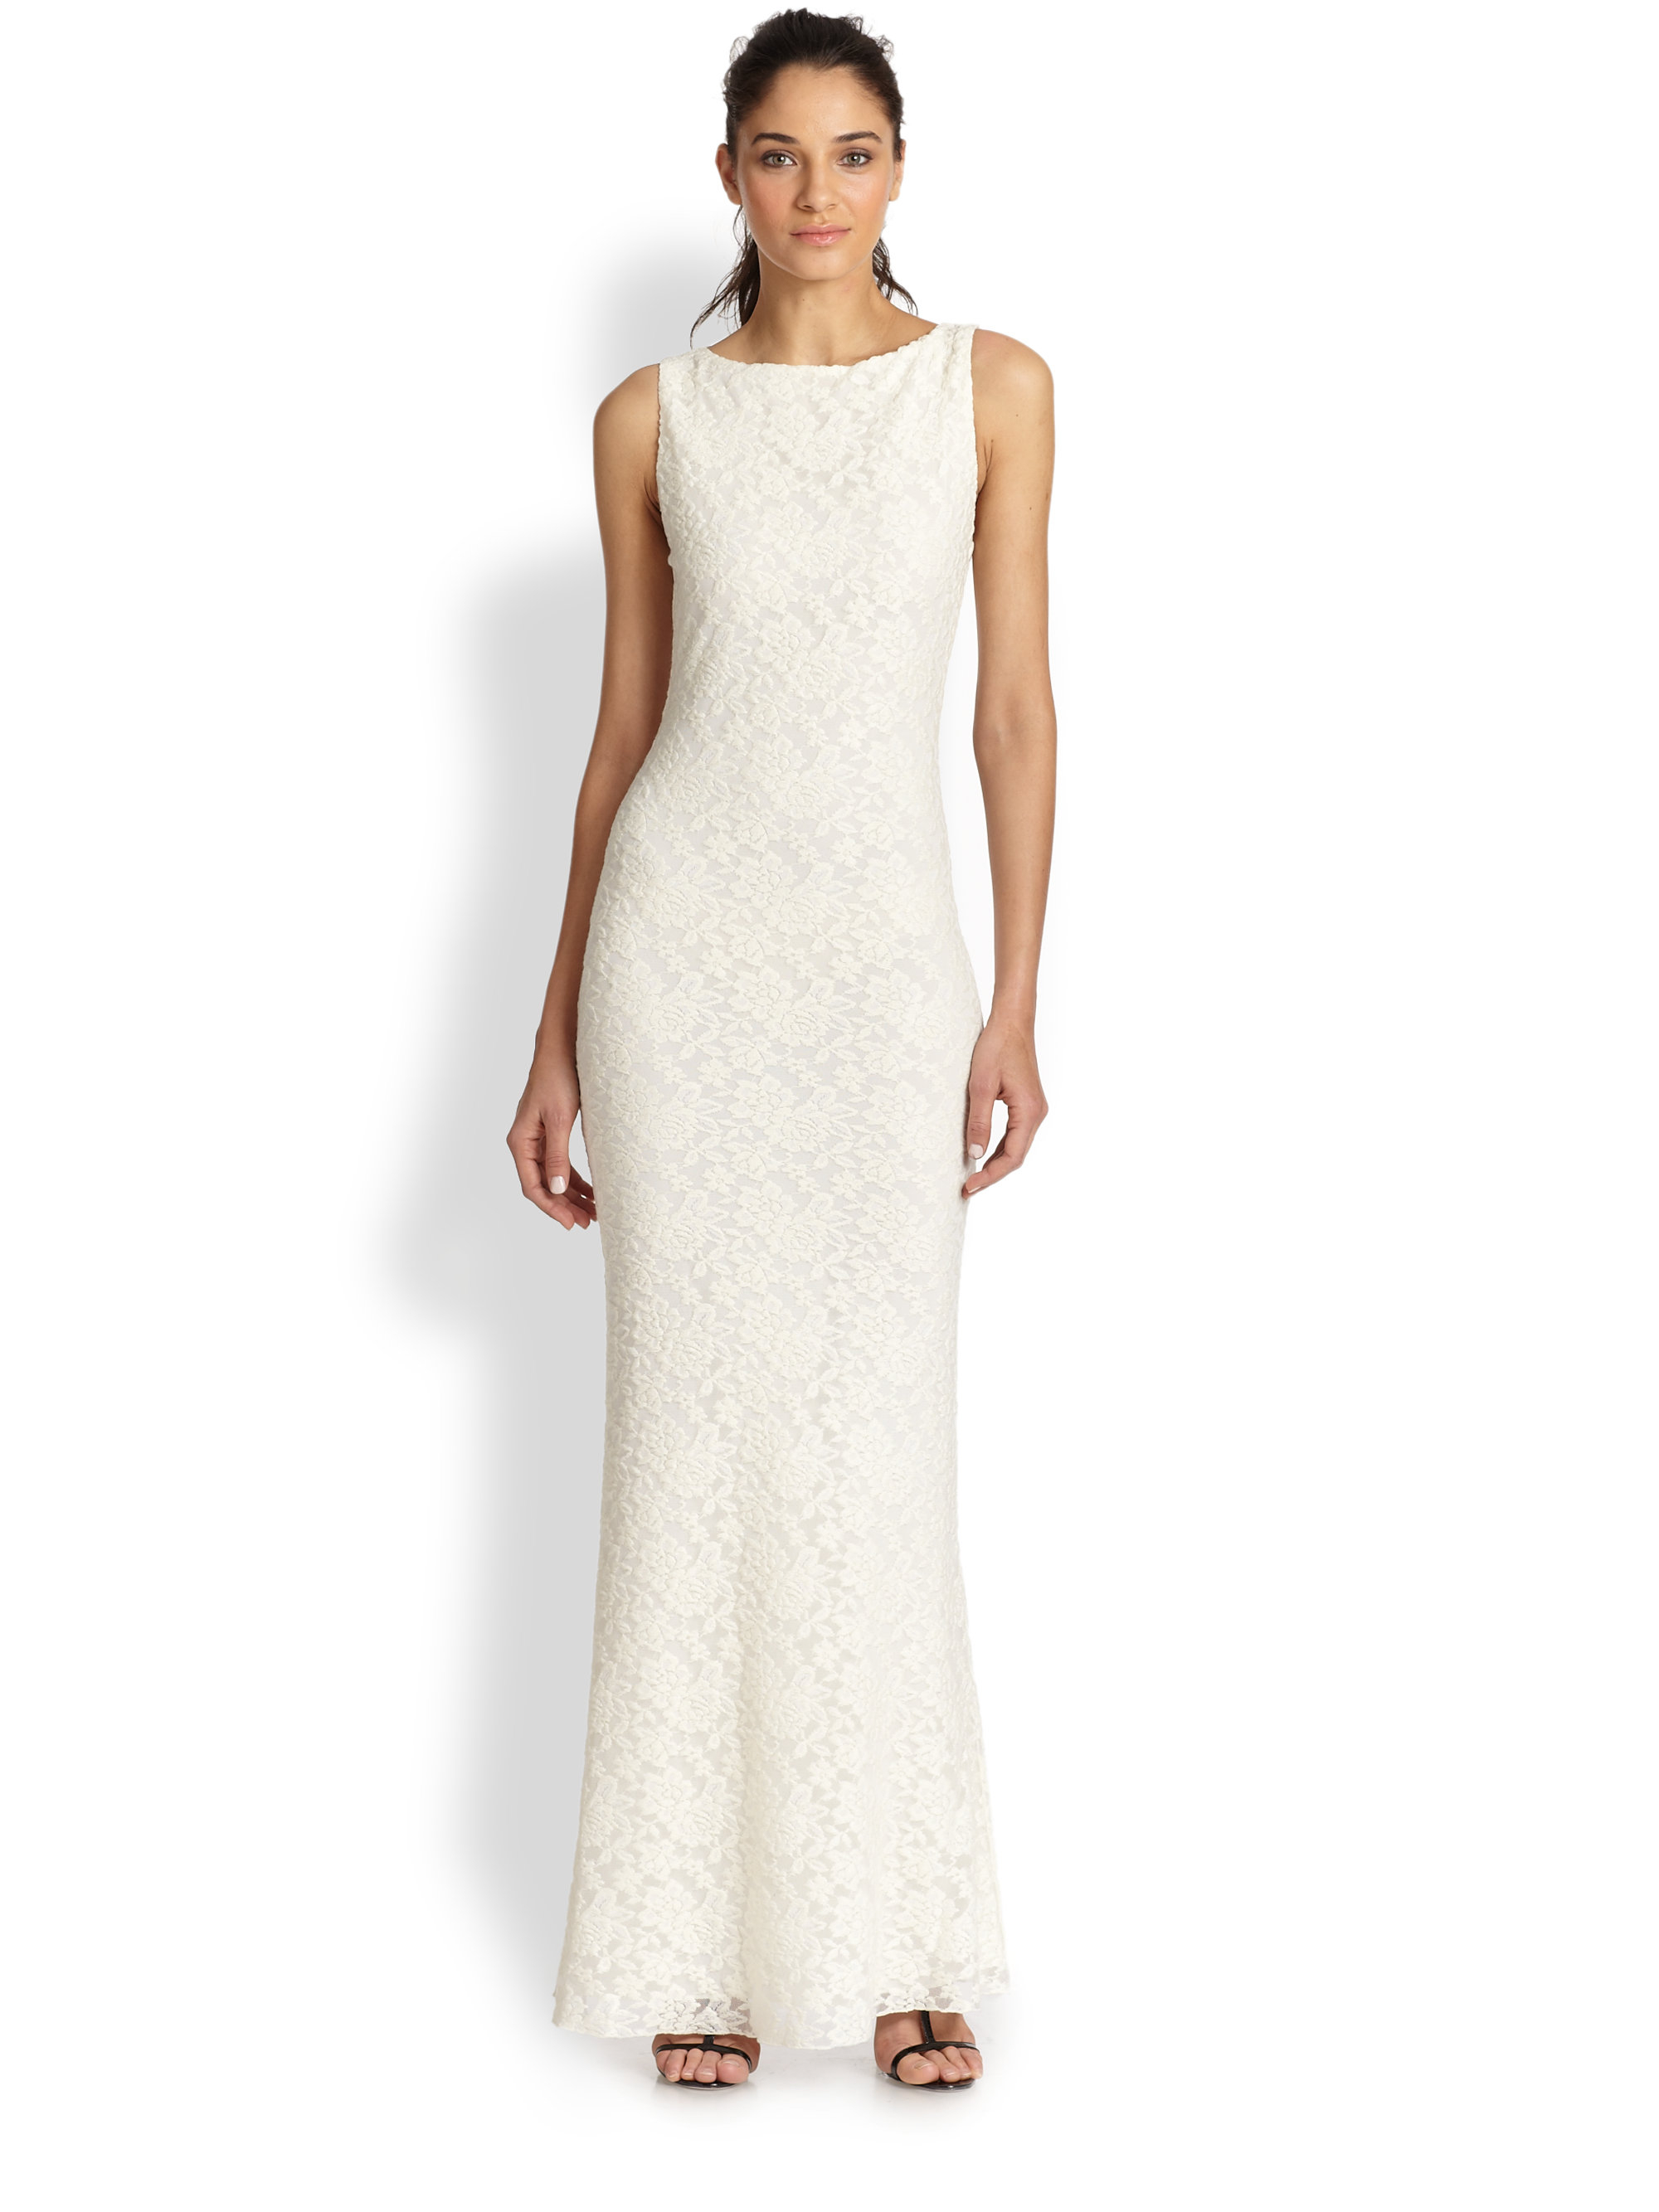 Lyst - Alice + Olivia Sachi Open-Back Embroidered Gown in Natural